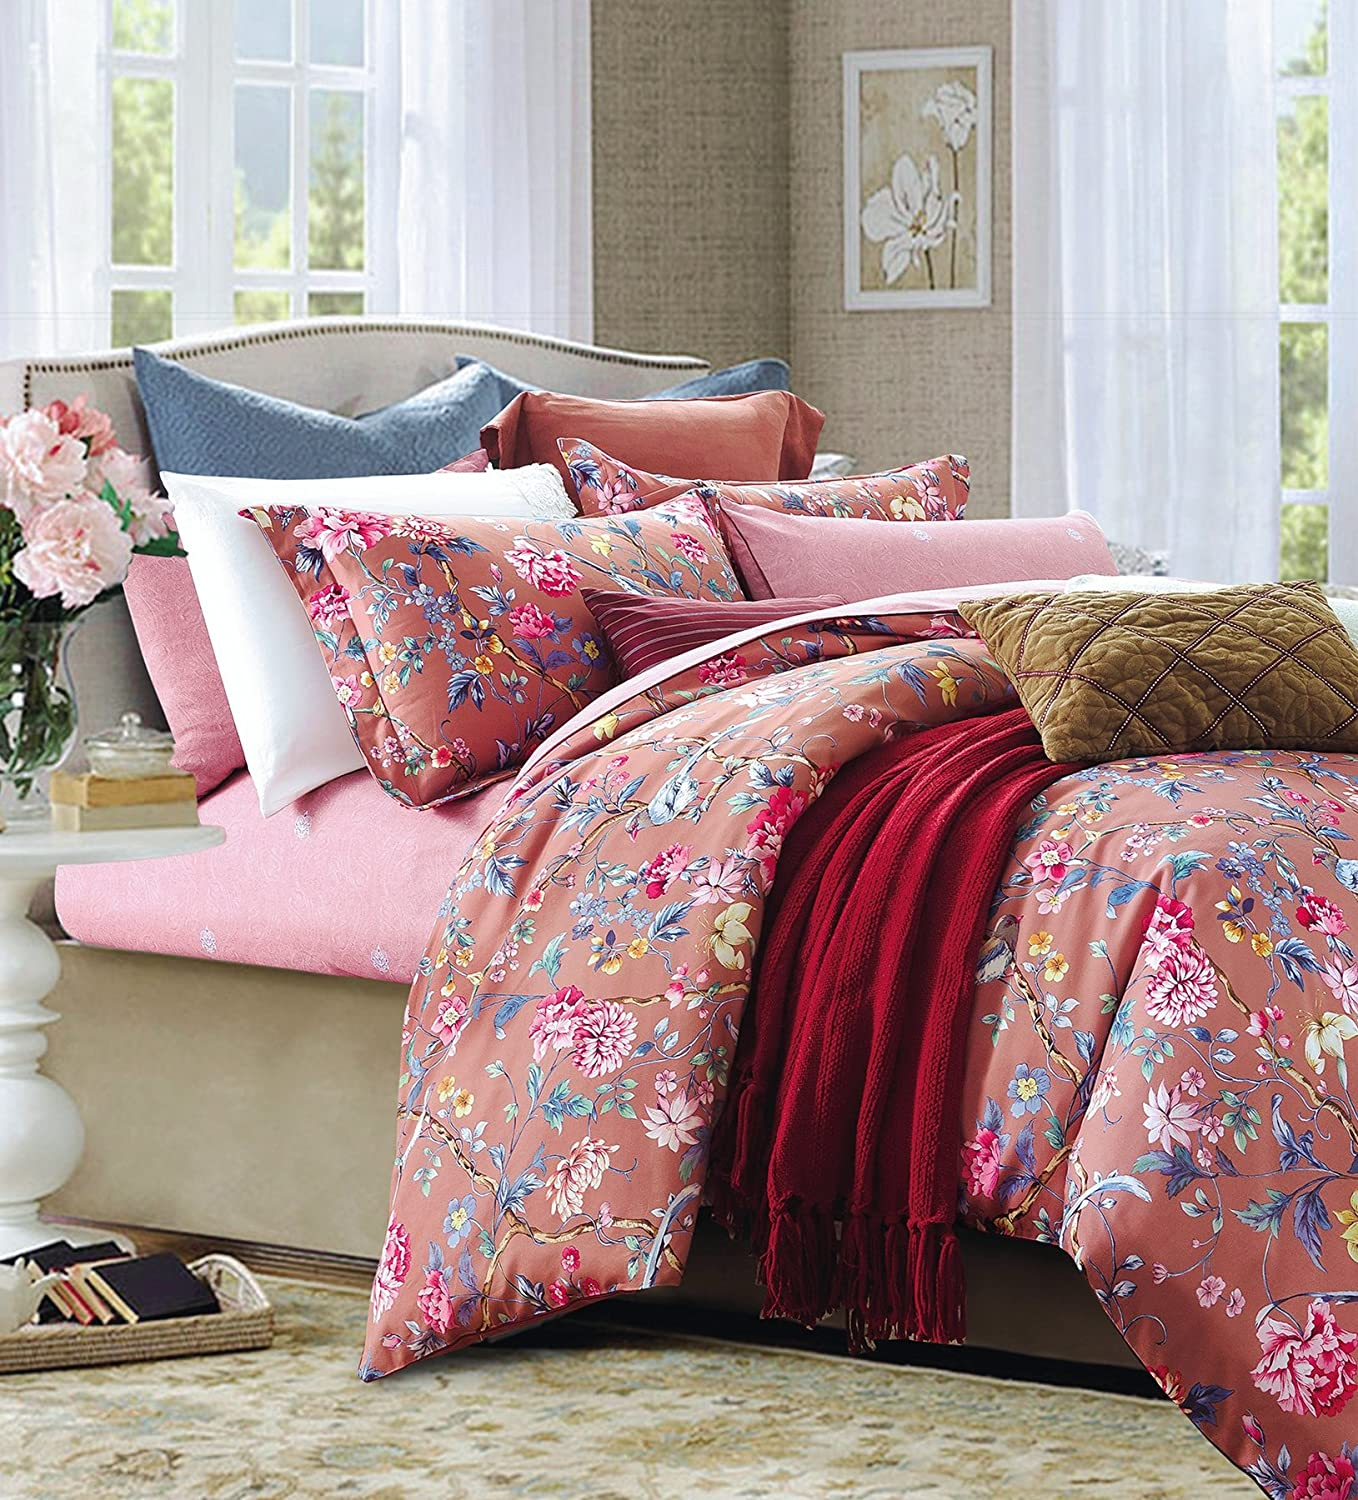 Bedding Set Asian Chinoiserie Print Colorful Tropical Tree Branches and Birds Floral Pattern